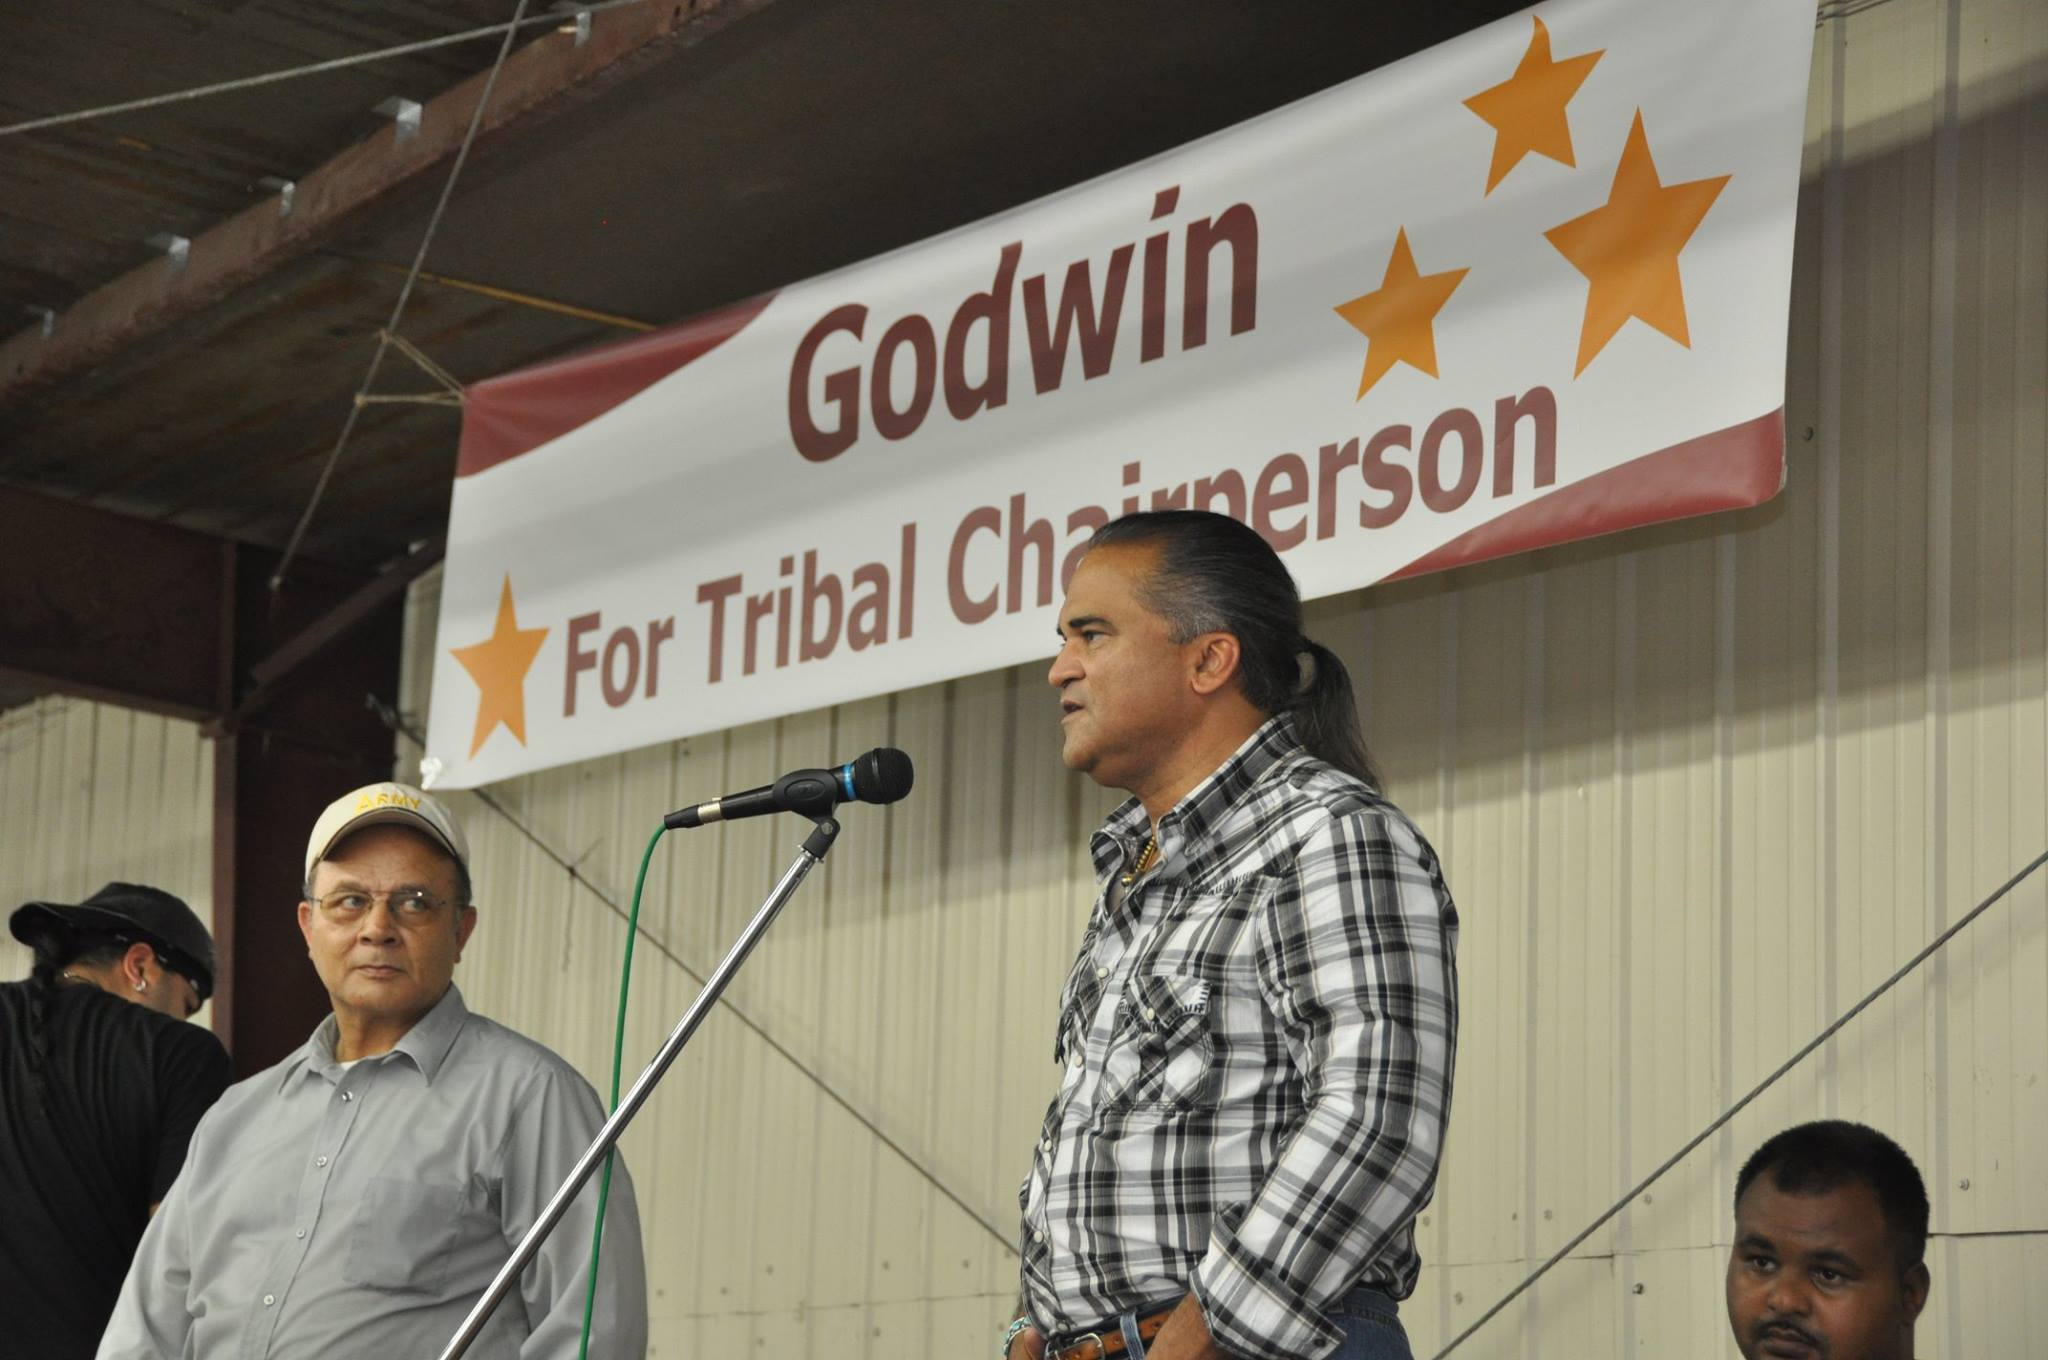 Voters of Lumbee Tribe pick newcomer Harvey Godwin as chair